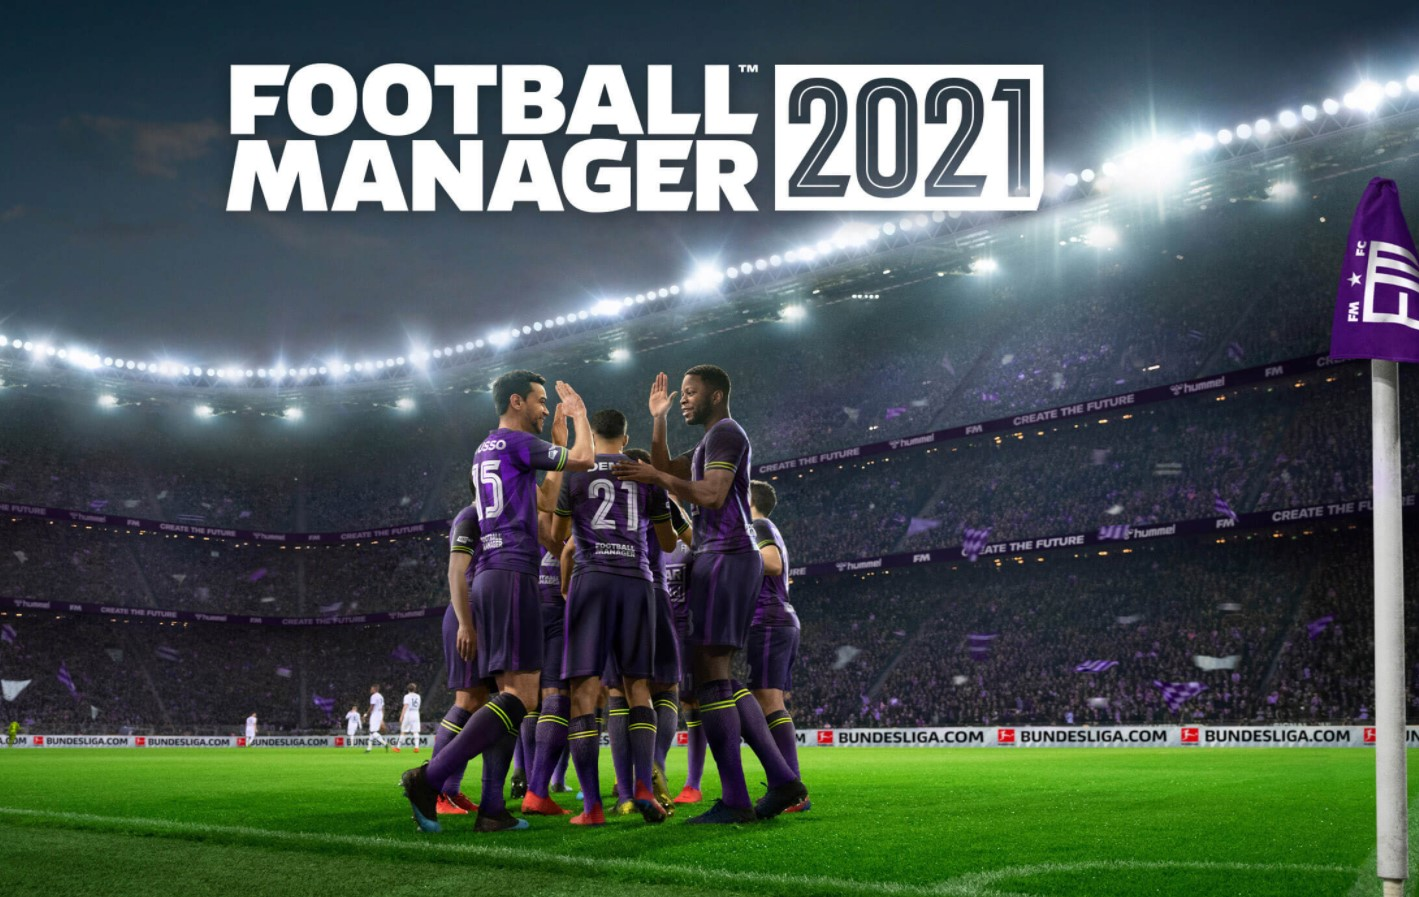 Football Manager 2021 saldrá en Xbox Series, Nintendo Switch, PC  móviles… Y no en PS5